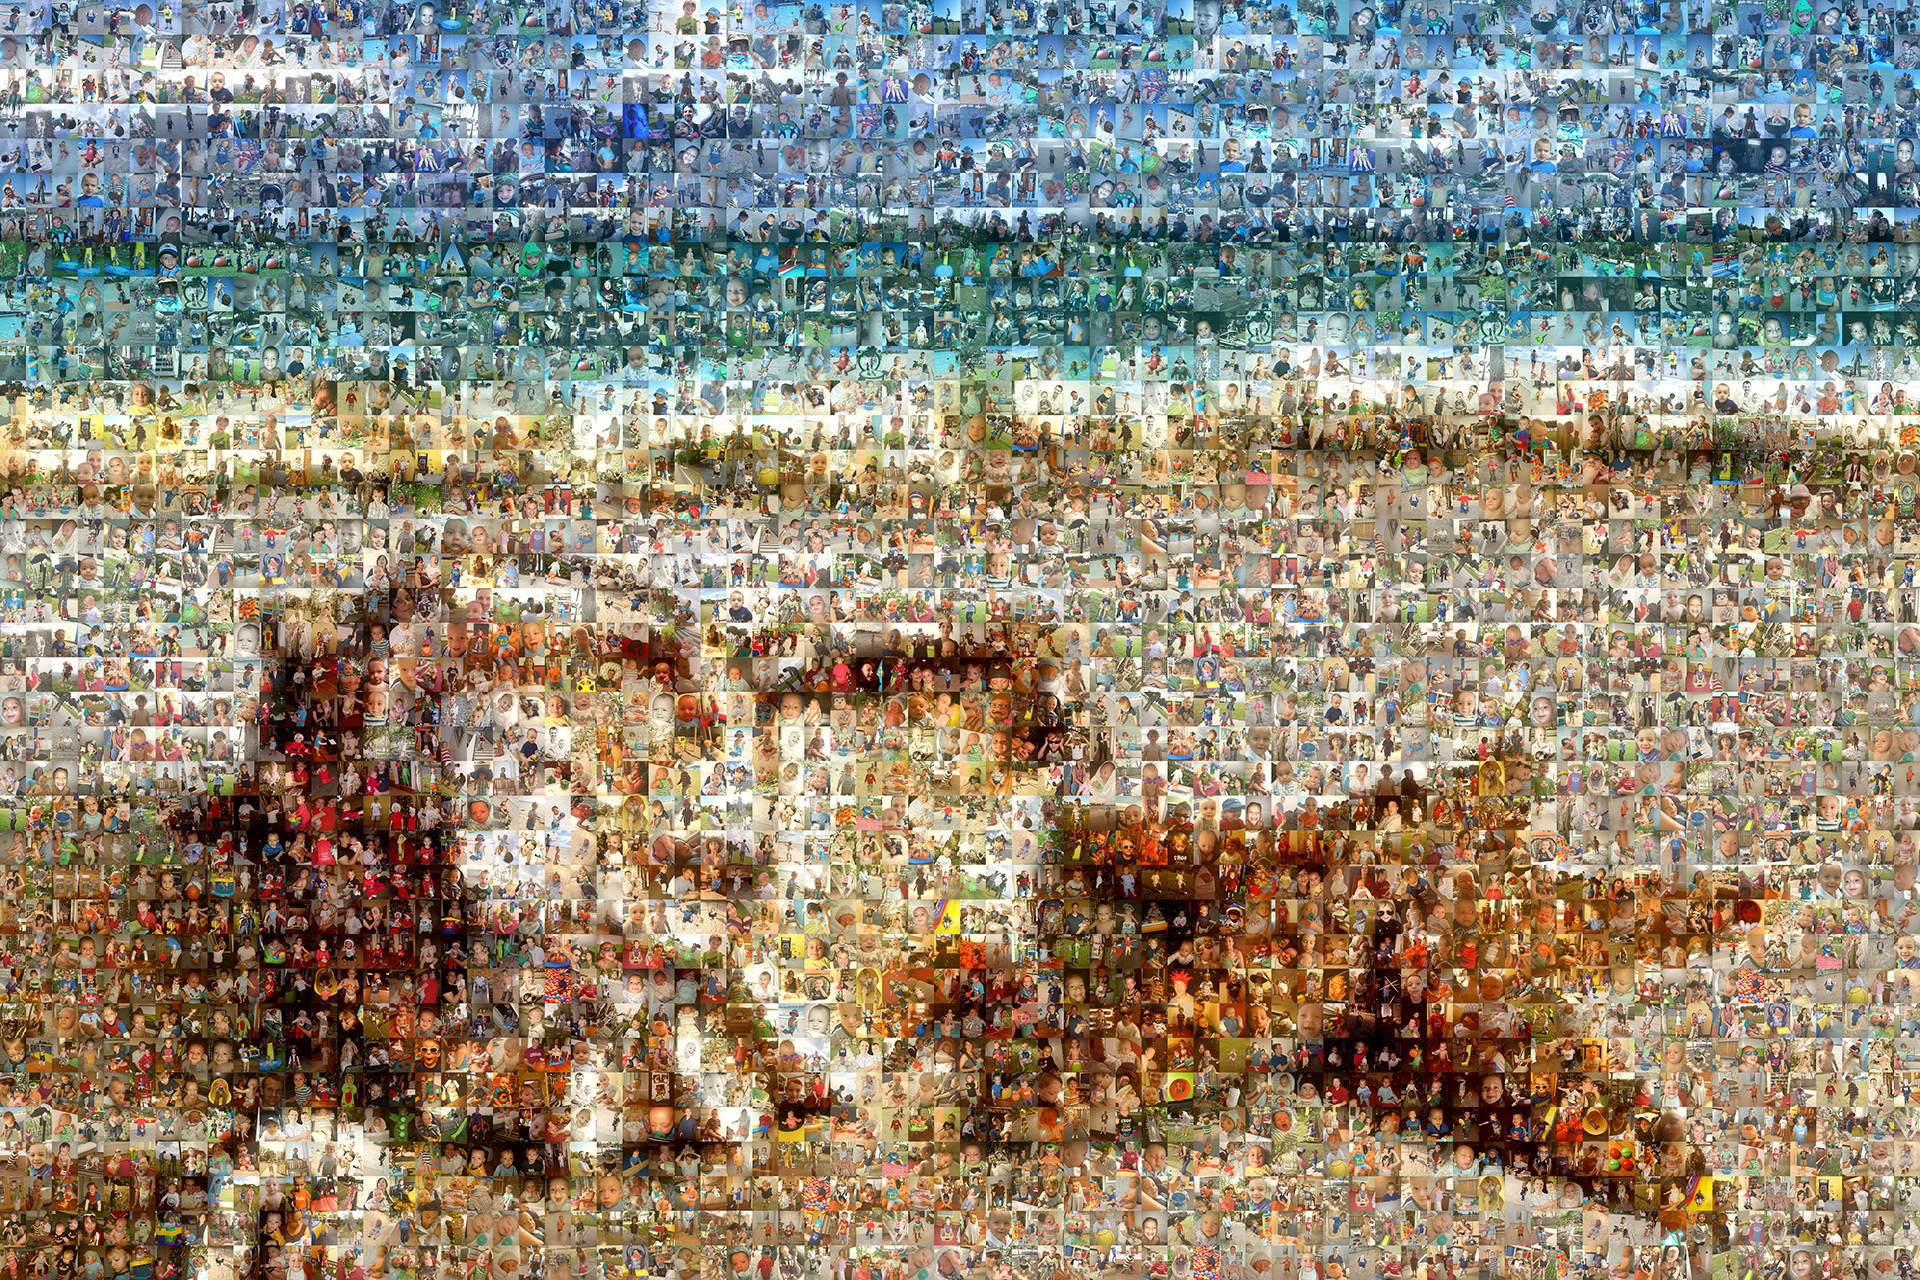 photo mosaic created using 1486 family photos